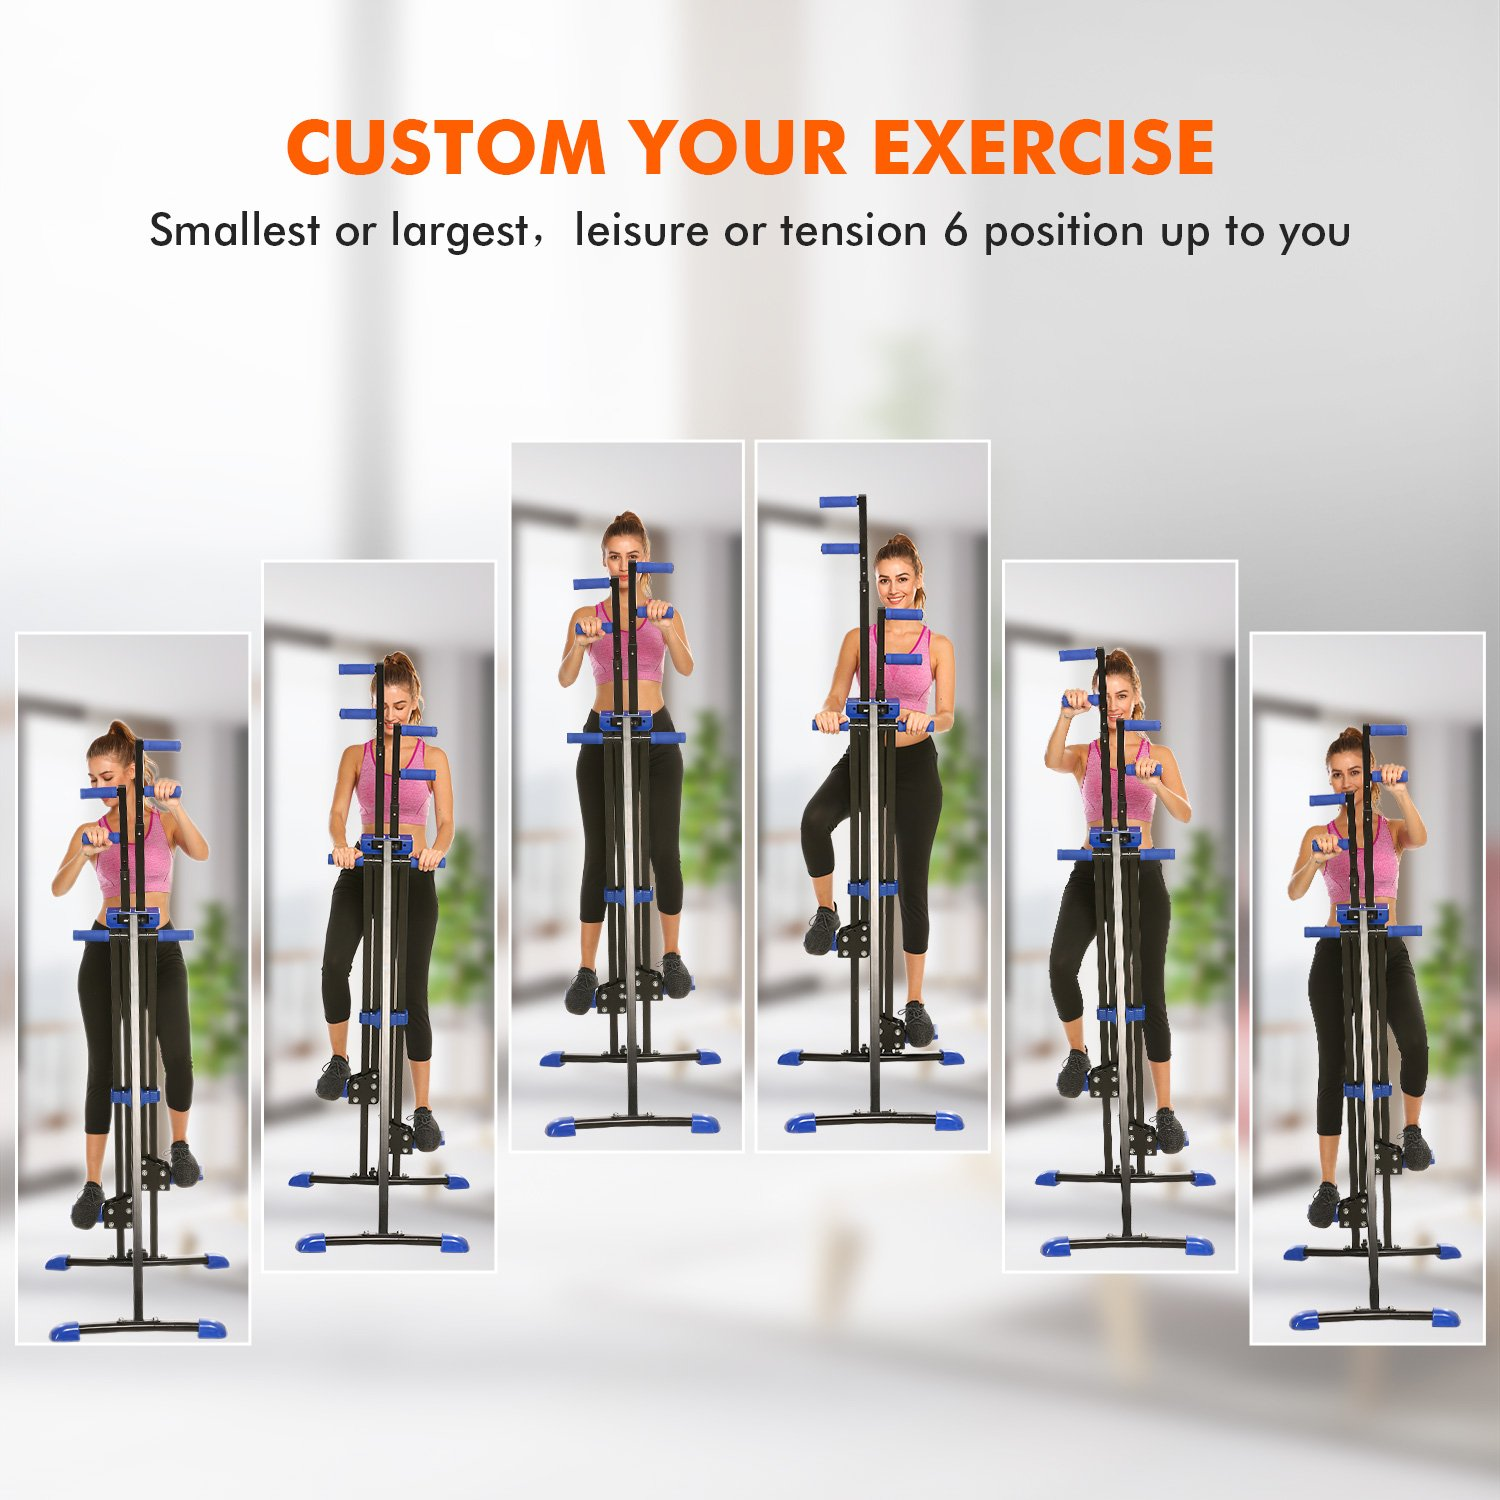 Dozenla Vertical Climber Stepper 2 In 1 Climbing Machine Exercise Fitness Foldable Stair Cardio Equipment [US Stock] by Dozenla (Image #7)